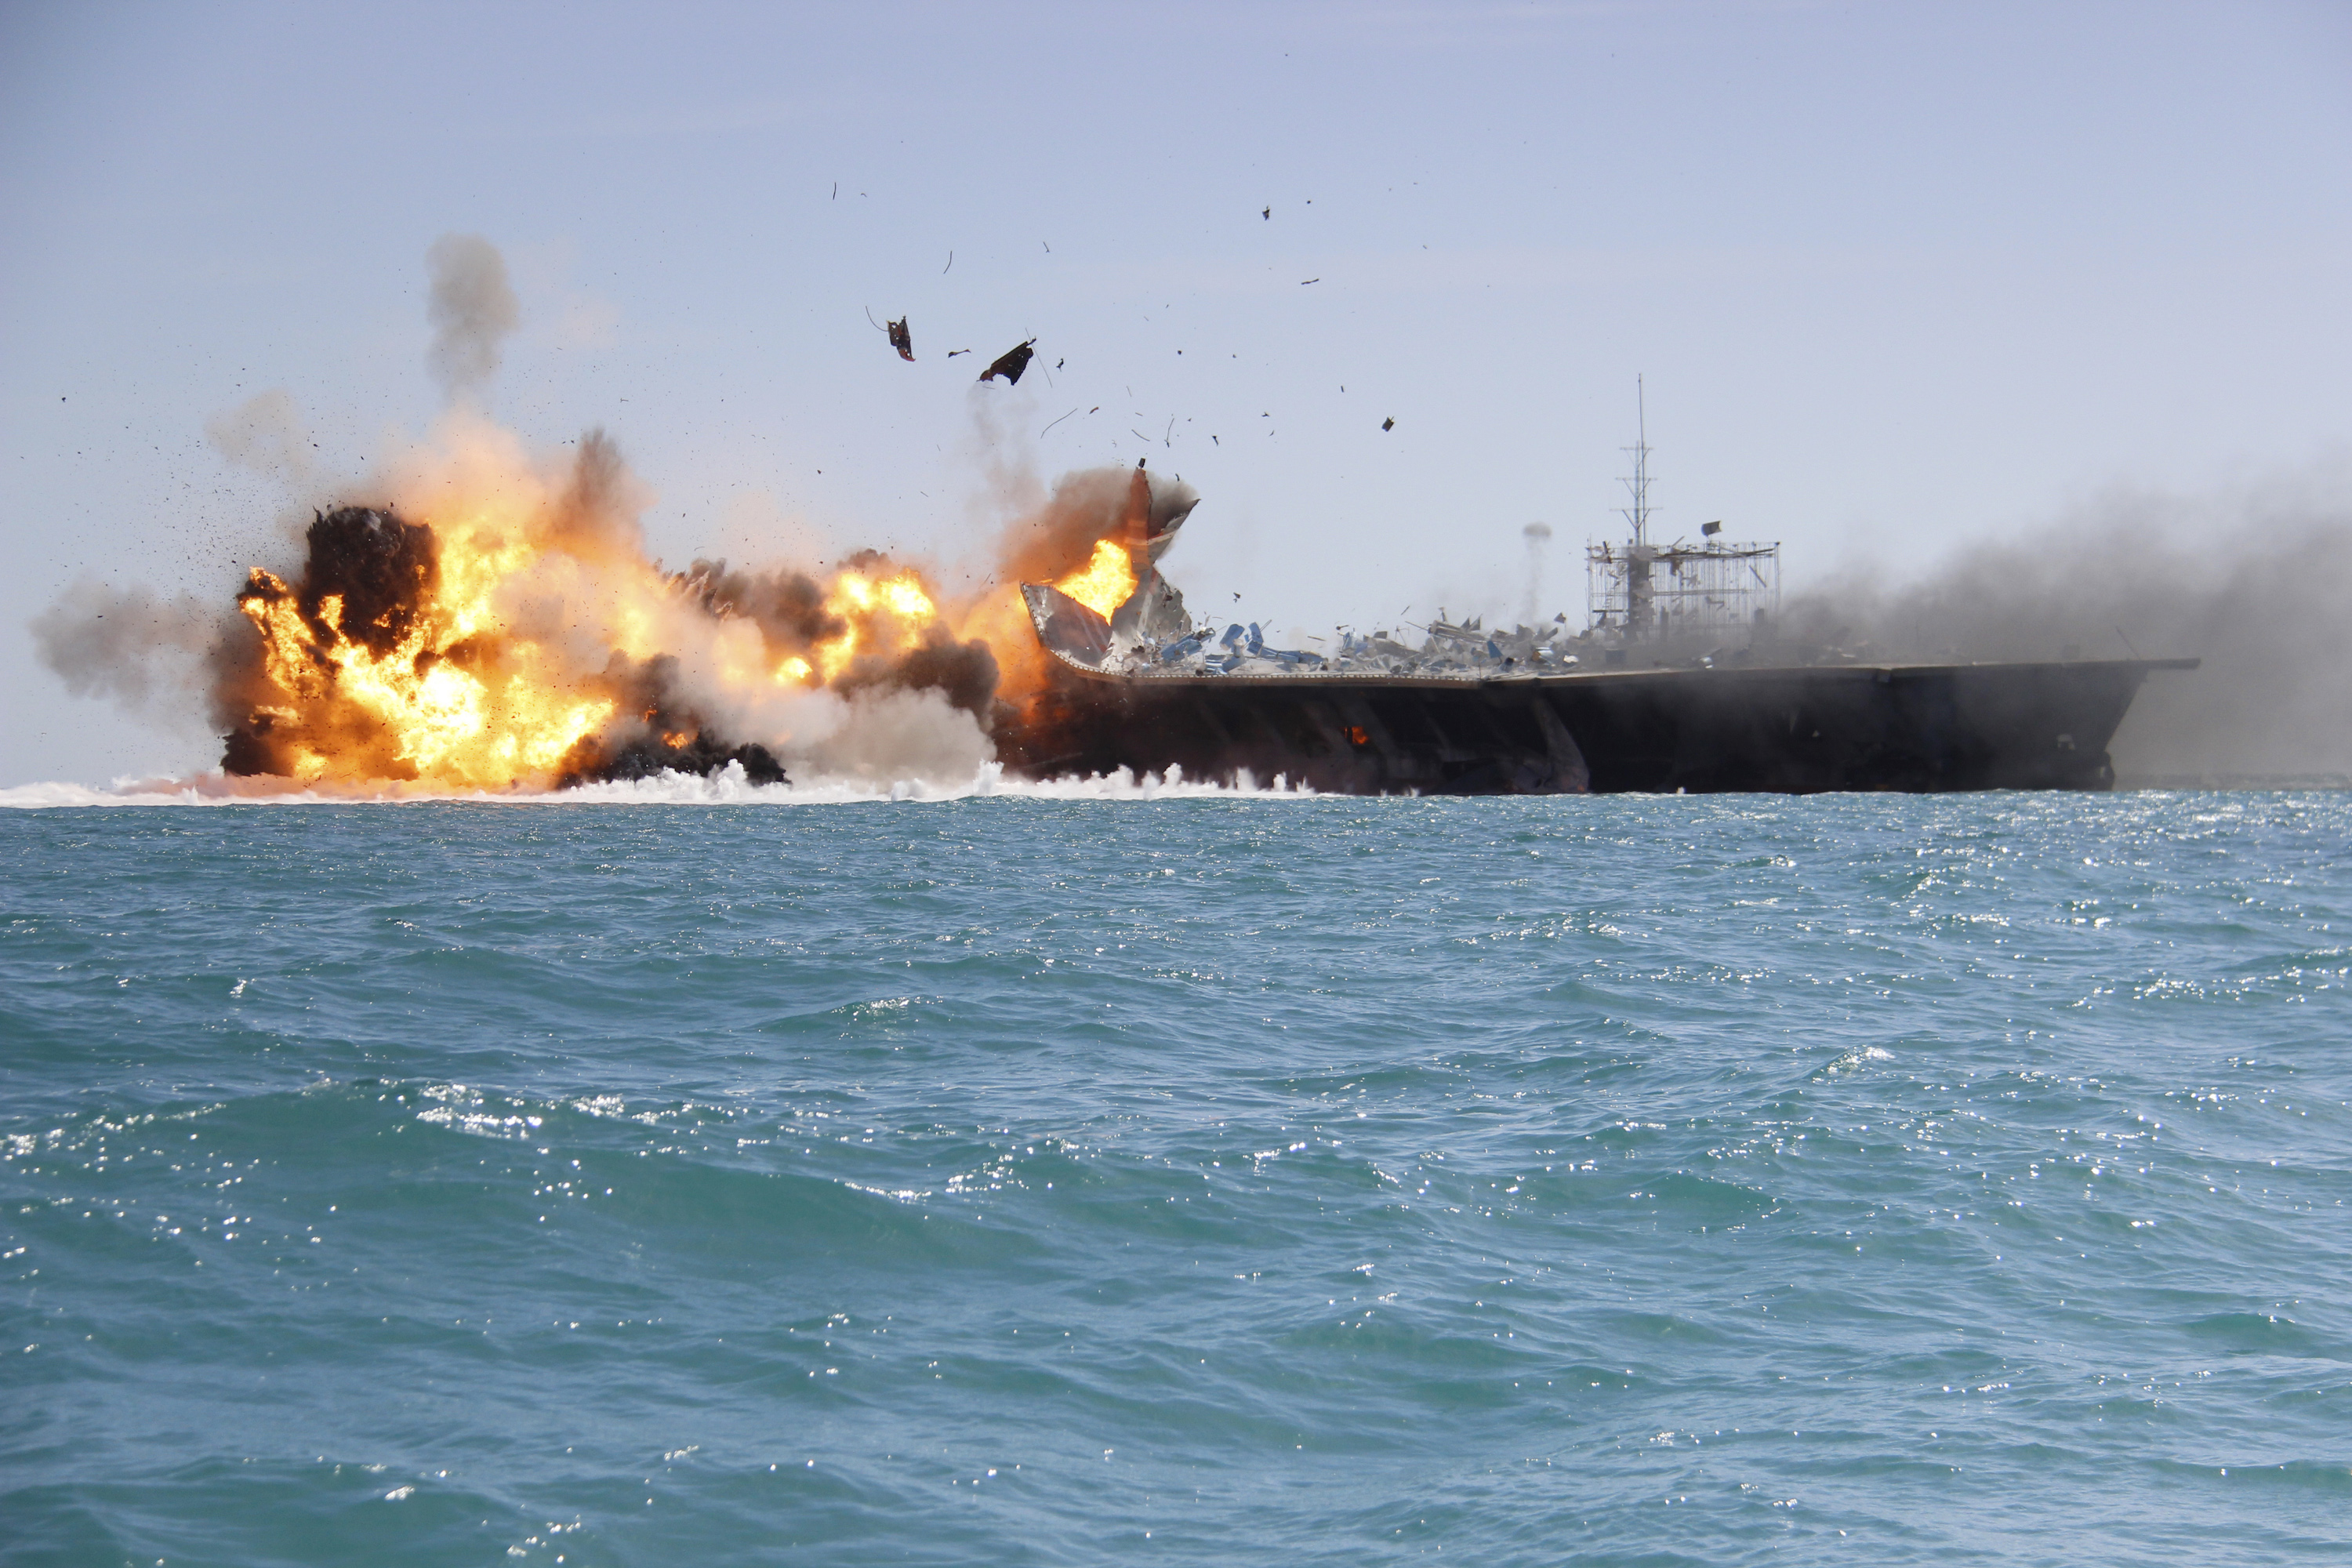 A replica of a U.S. aircraft carrier is exploded by the Revolutionary Guard during naval drills near the entrance of the Persian Gulf, Iran on Feb. 25, 2015.